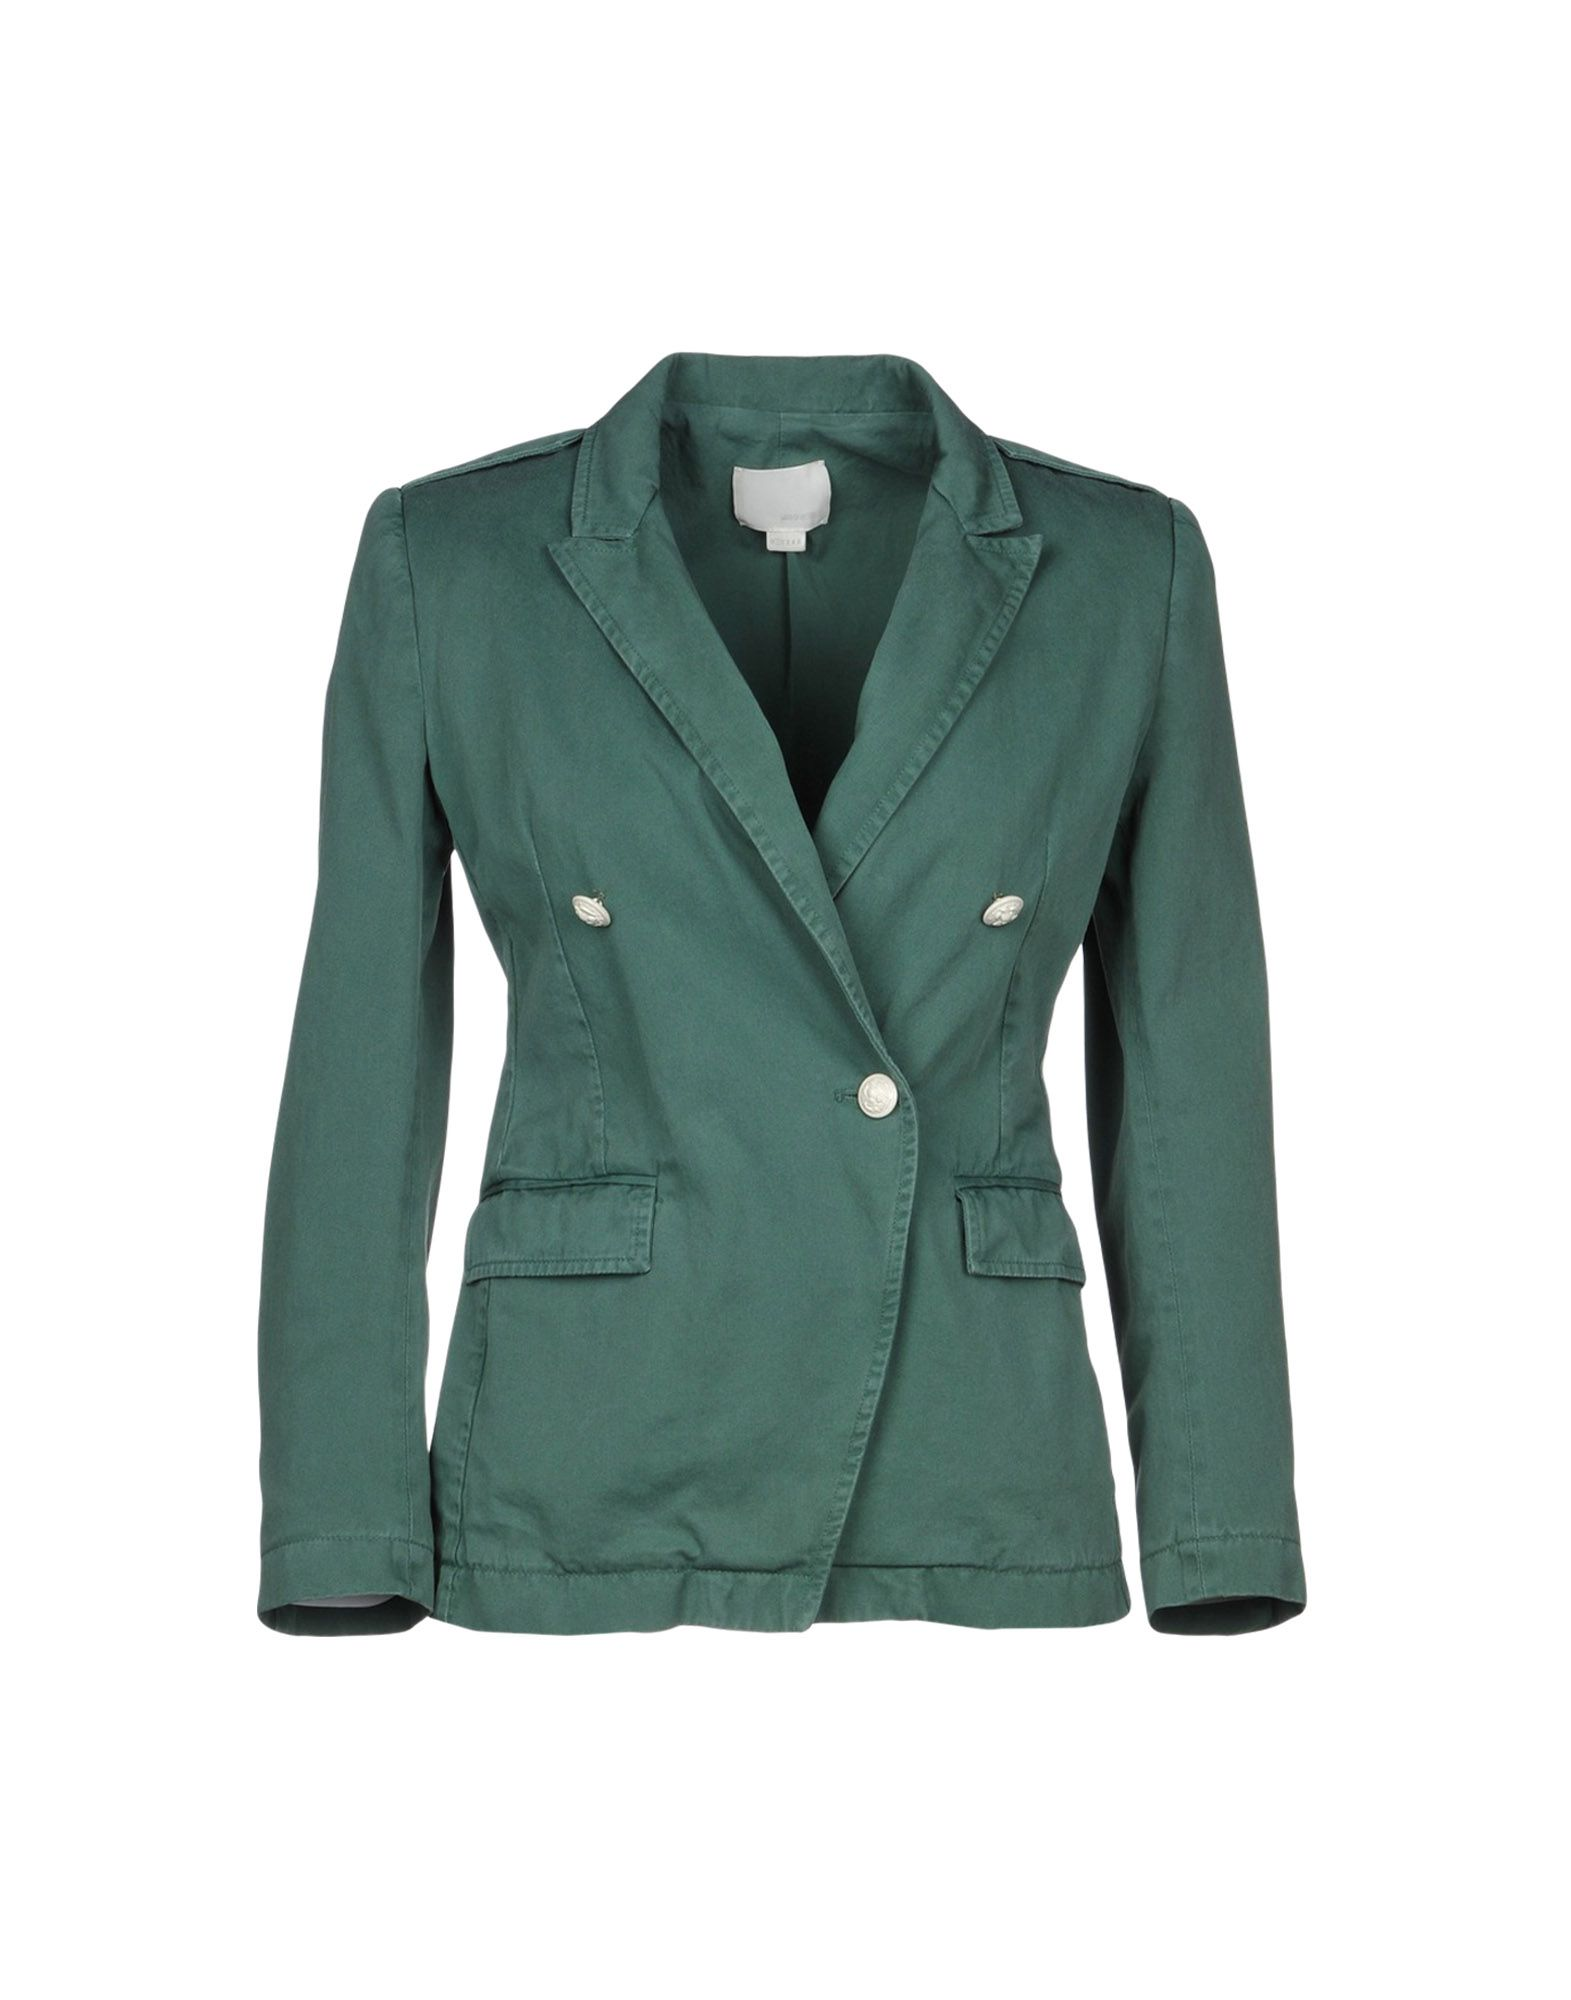 BAND OF OUTSIDERS Blazer in Green